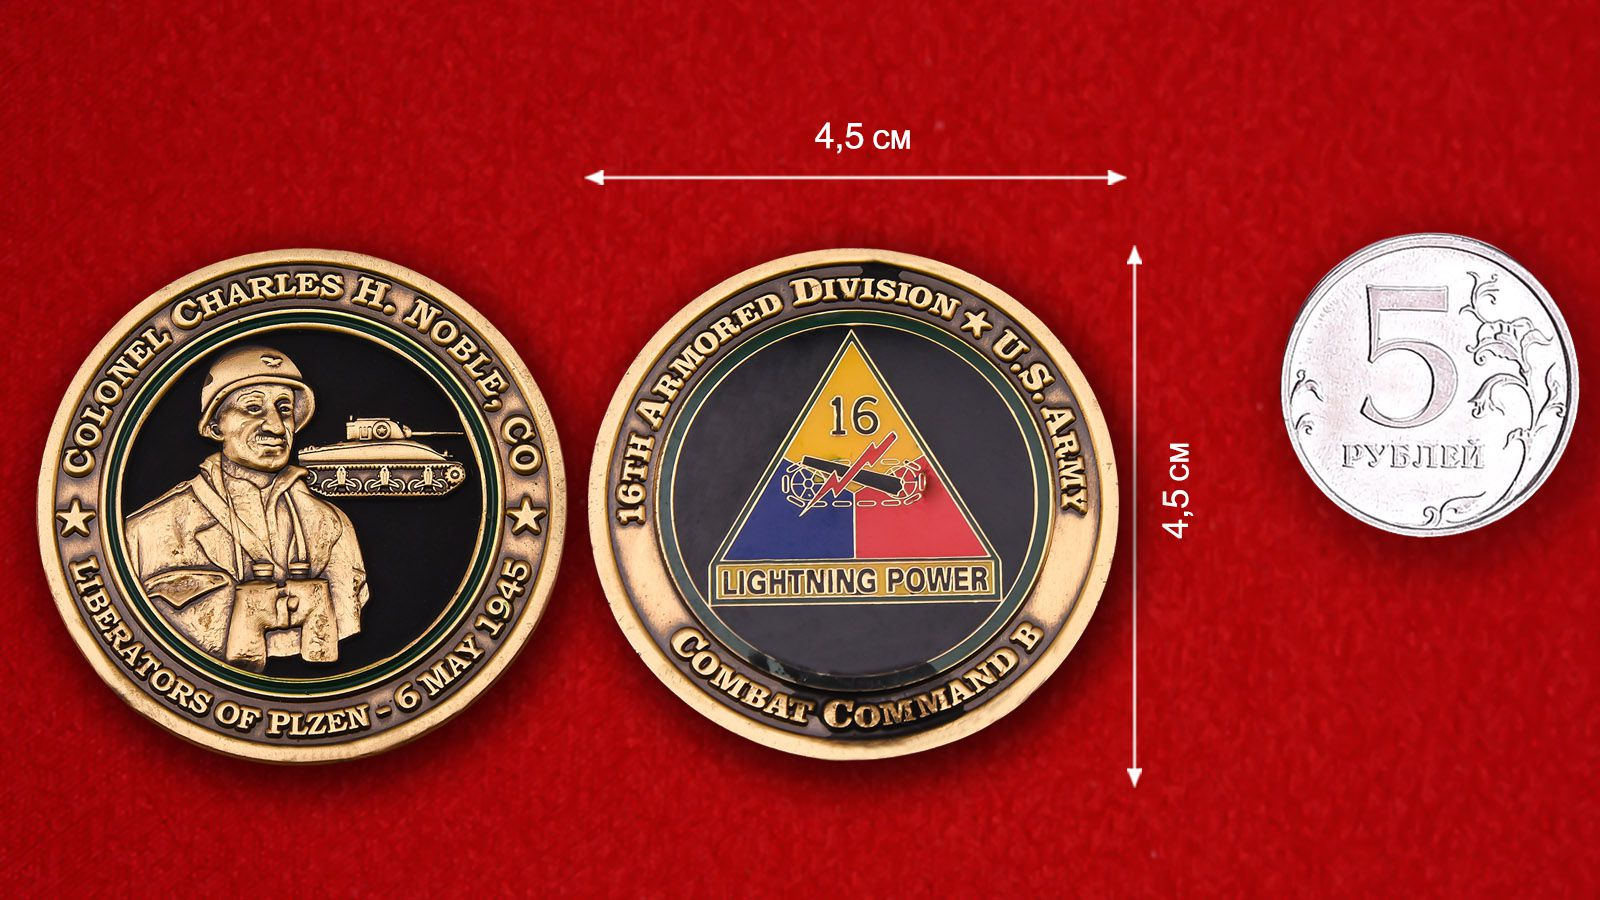 16th Armored Division U.S. Army Challenge Coin - comparative size